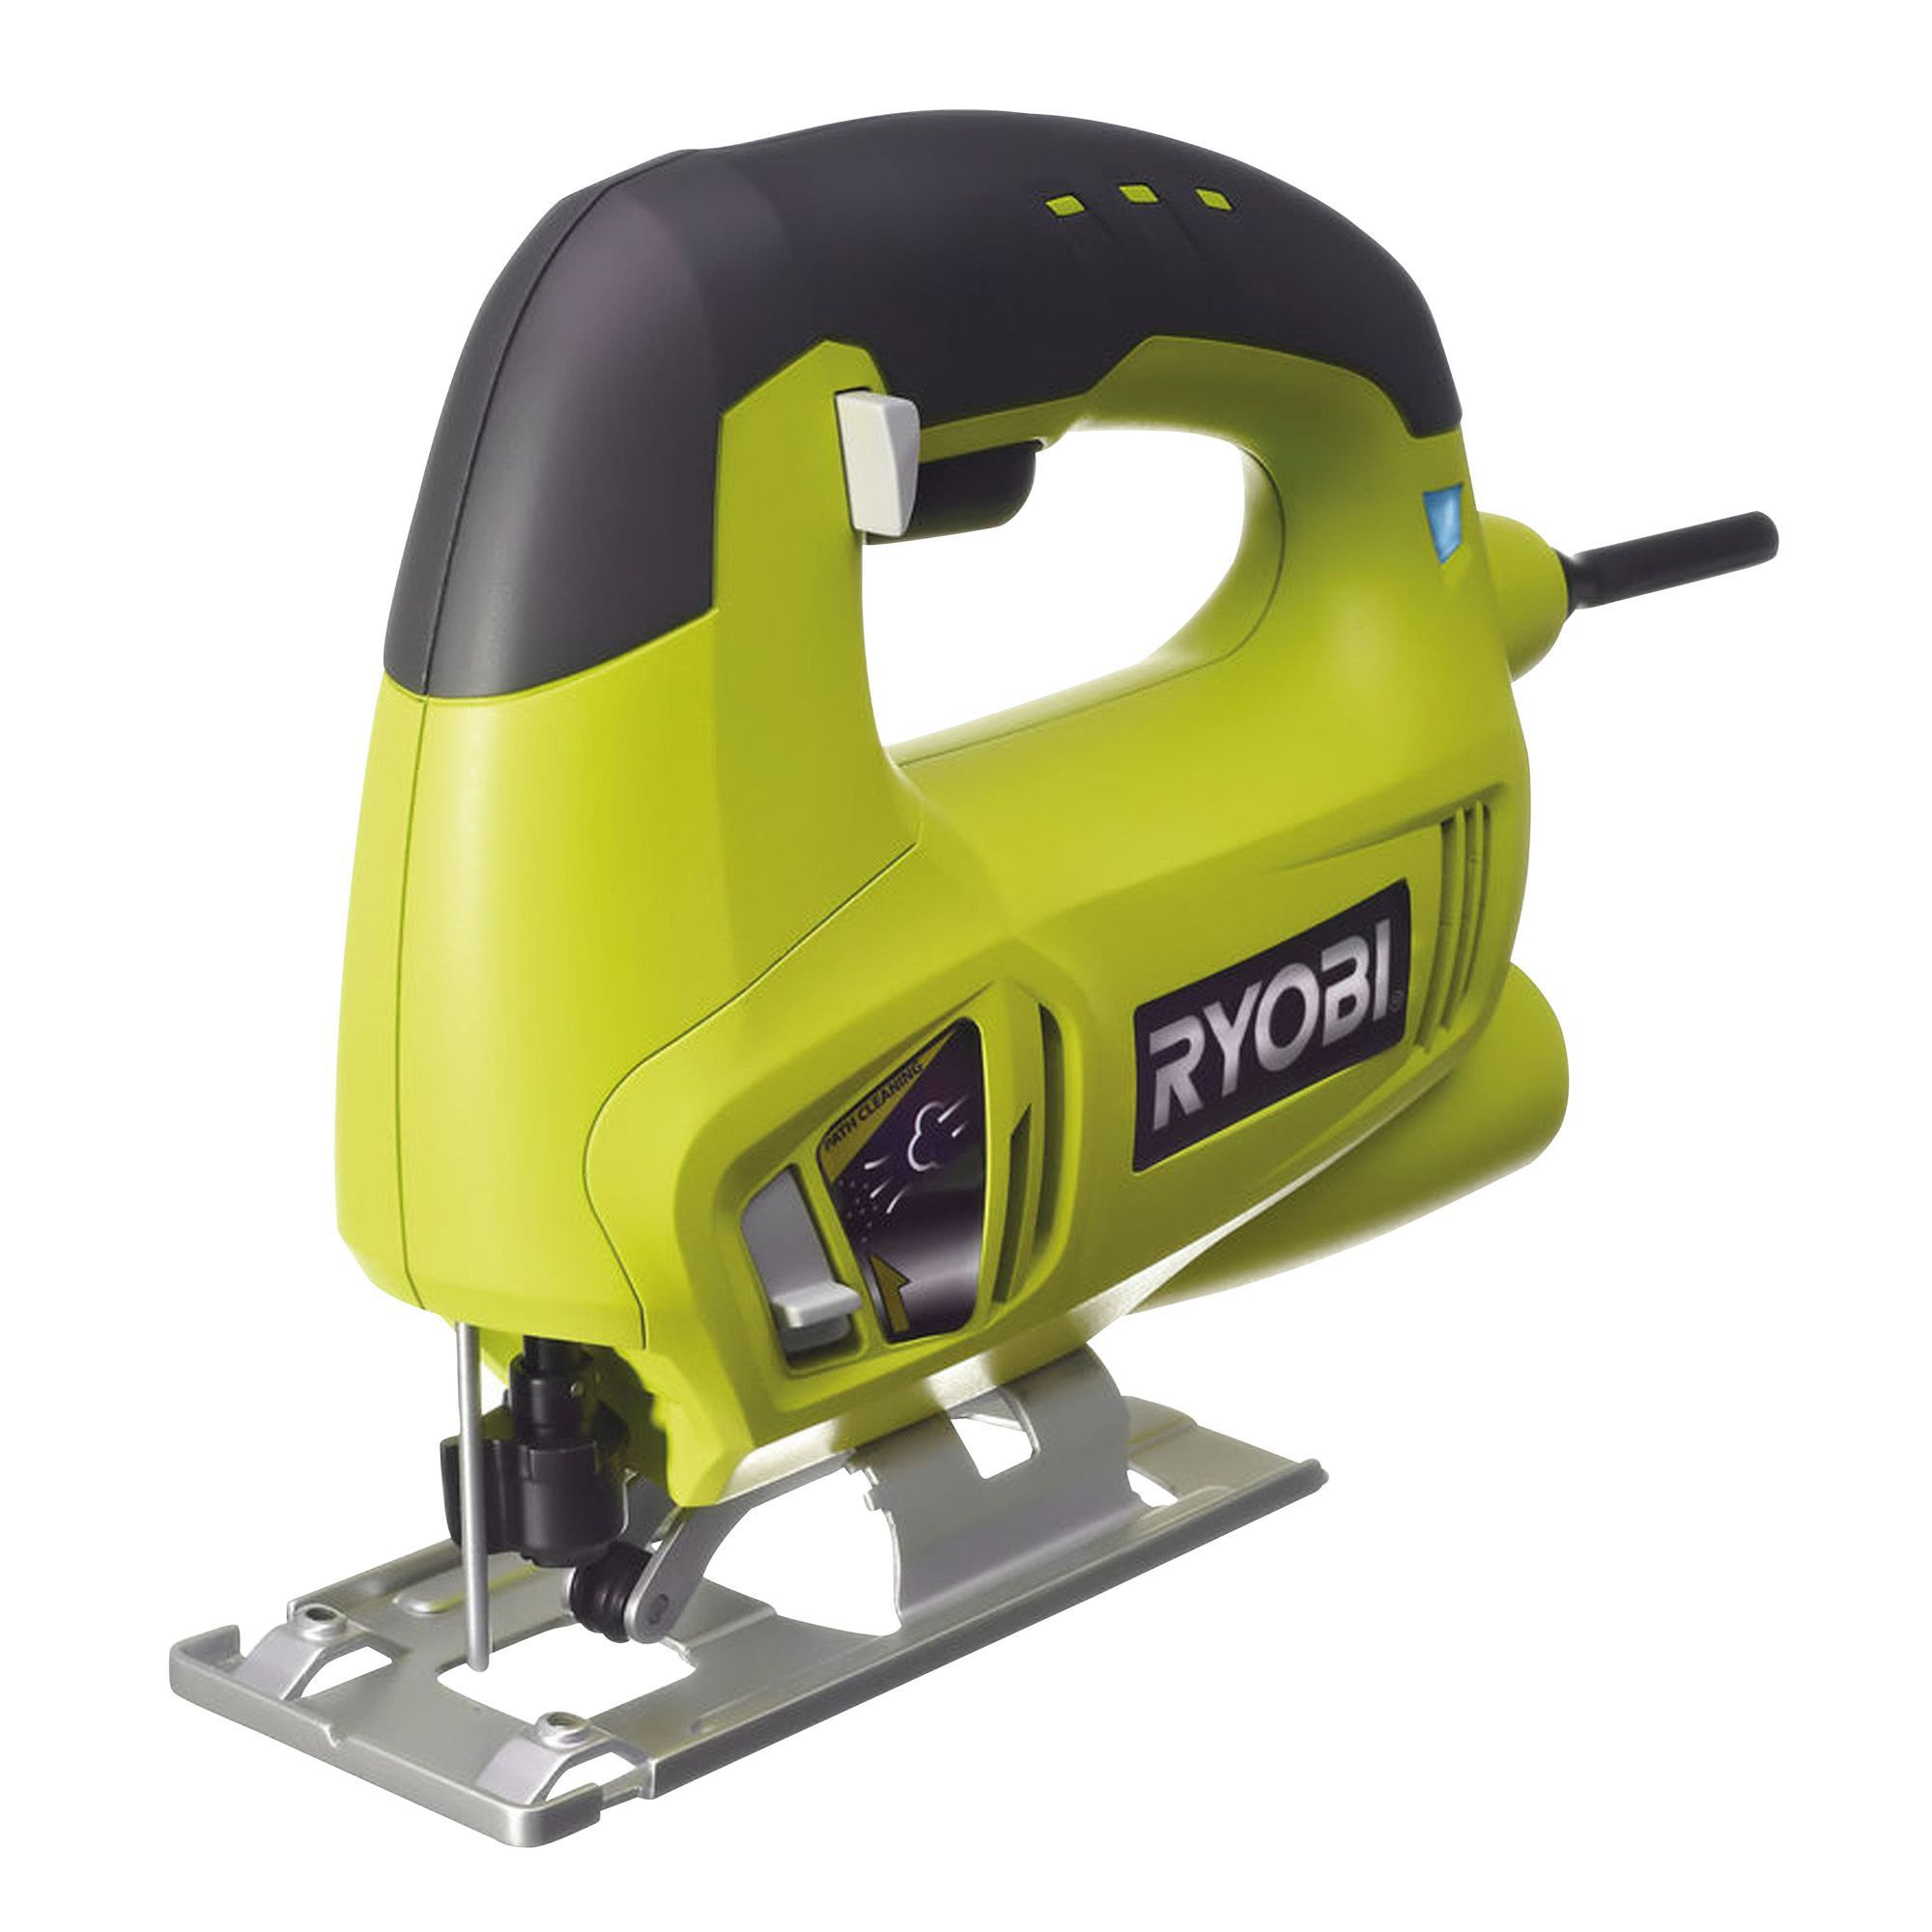 Ryobi 500w jigsaw ejs500 departments diy at bq keyboard keysfo Gallery